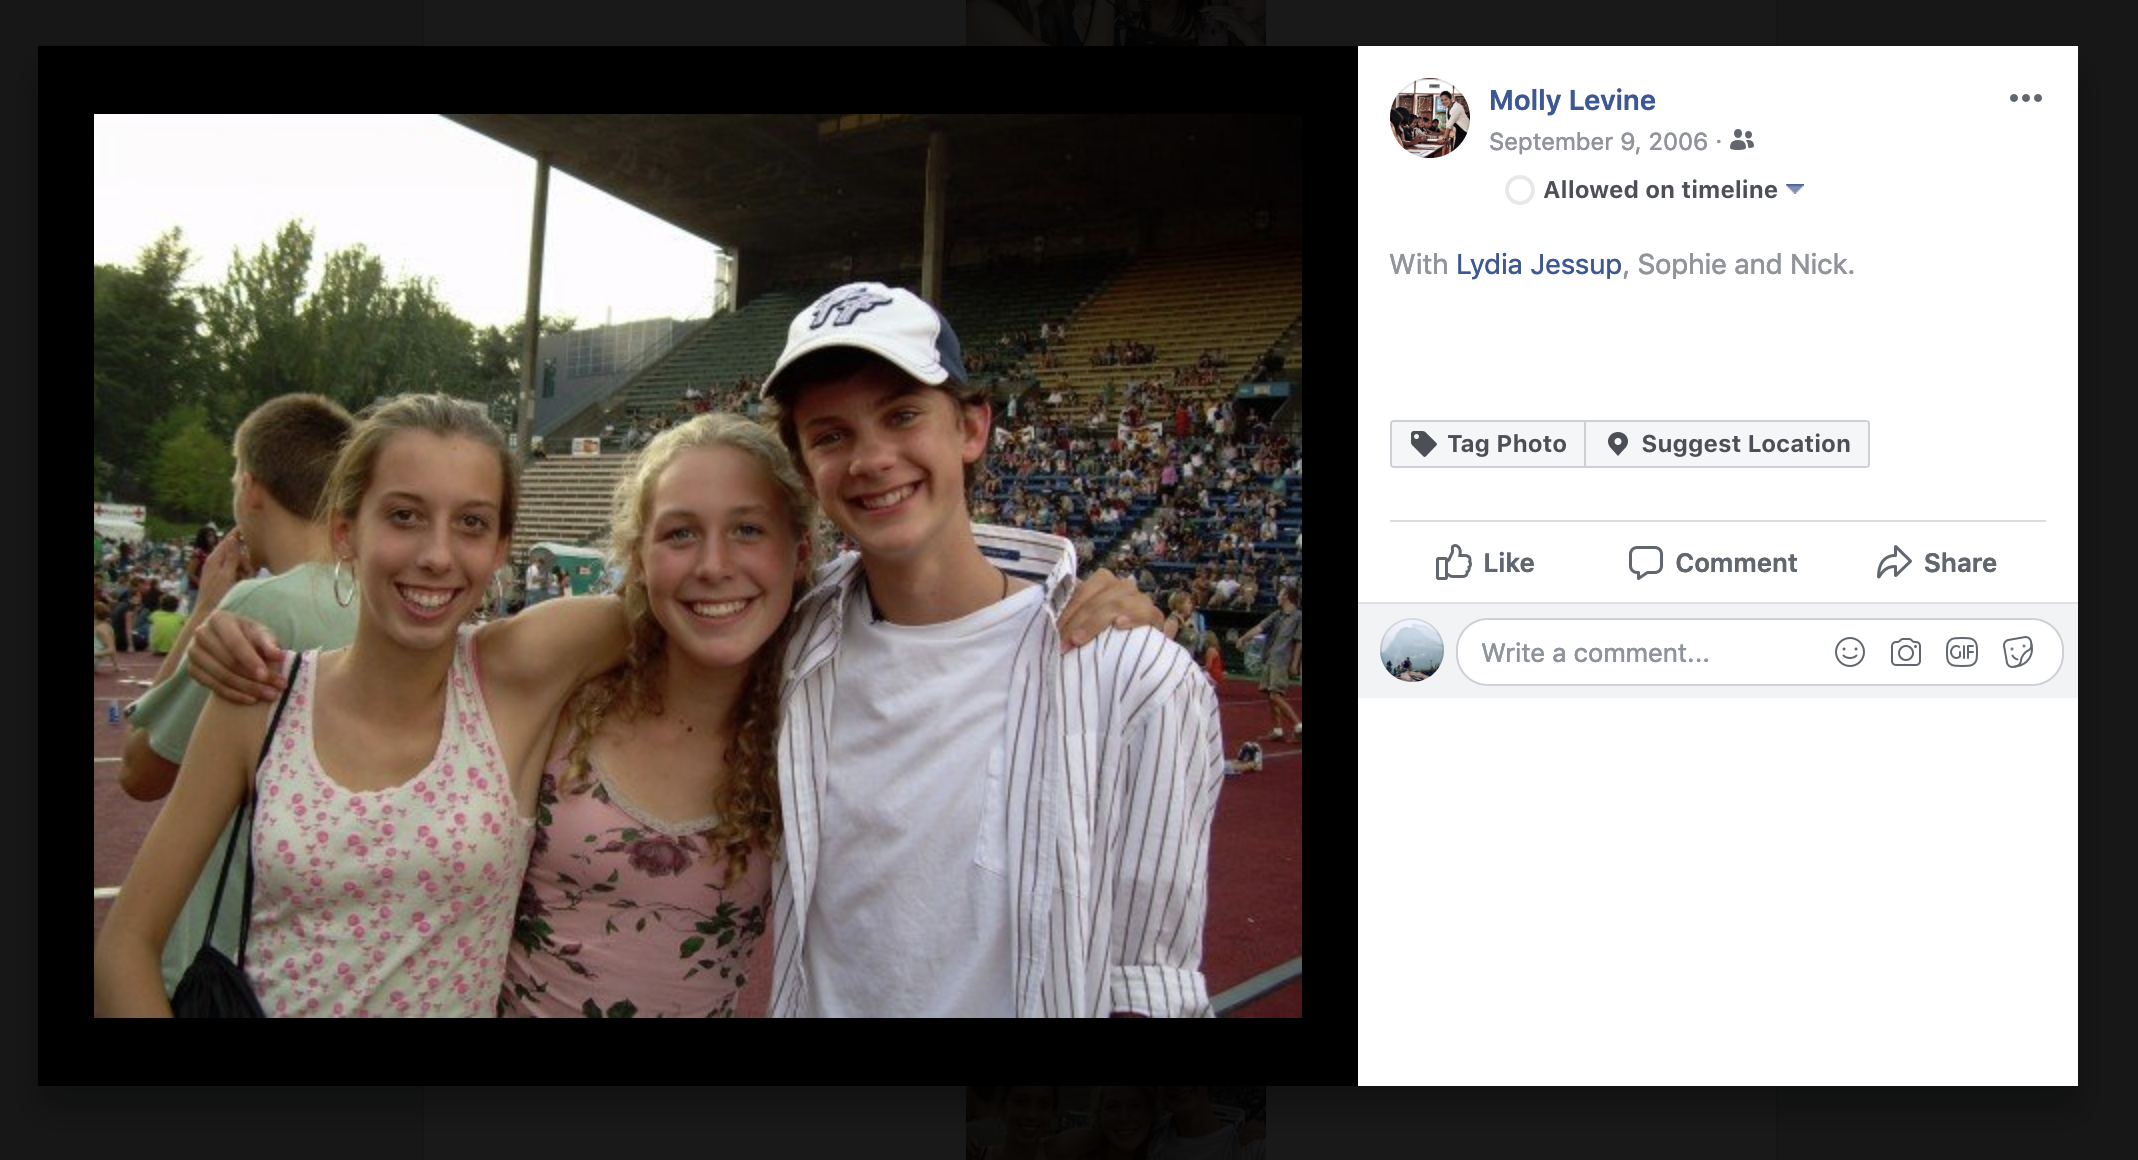 My fist tagged photo on Facebook. September 6, 2006.